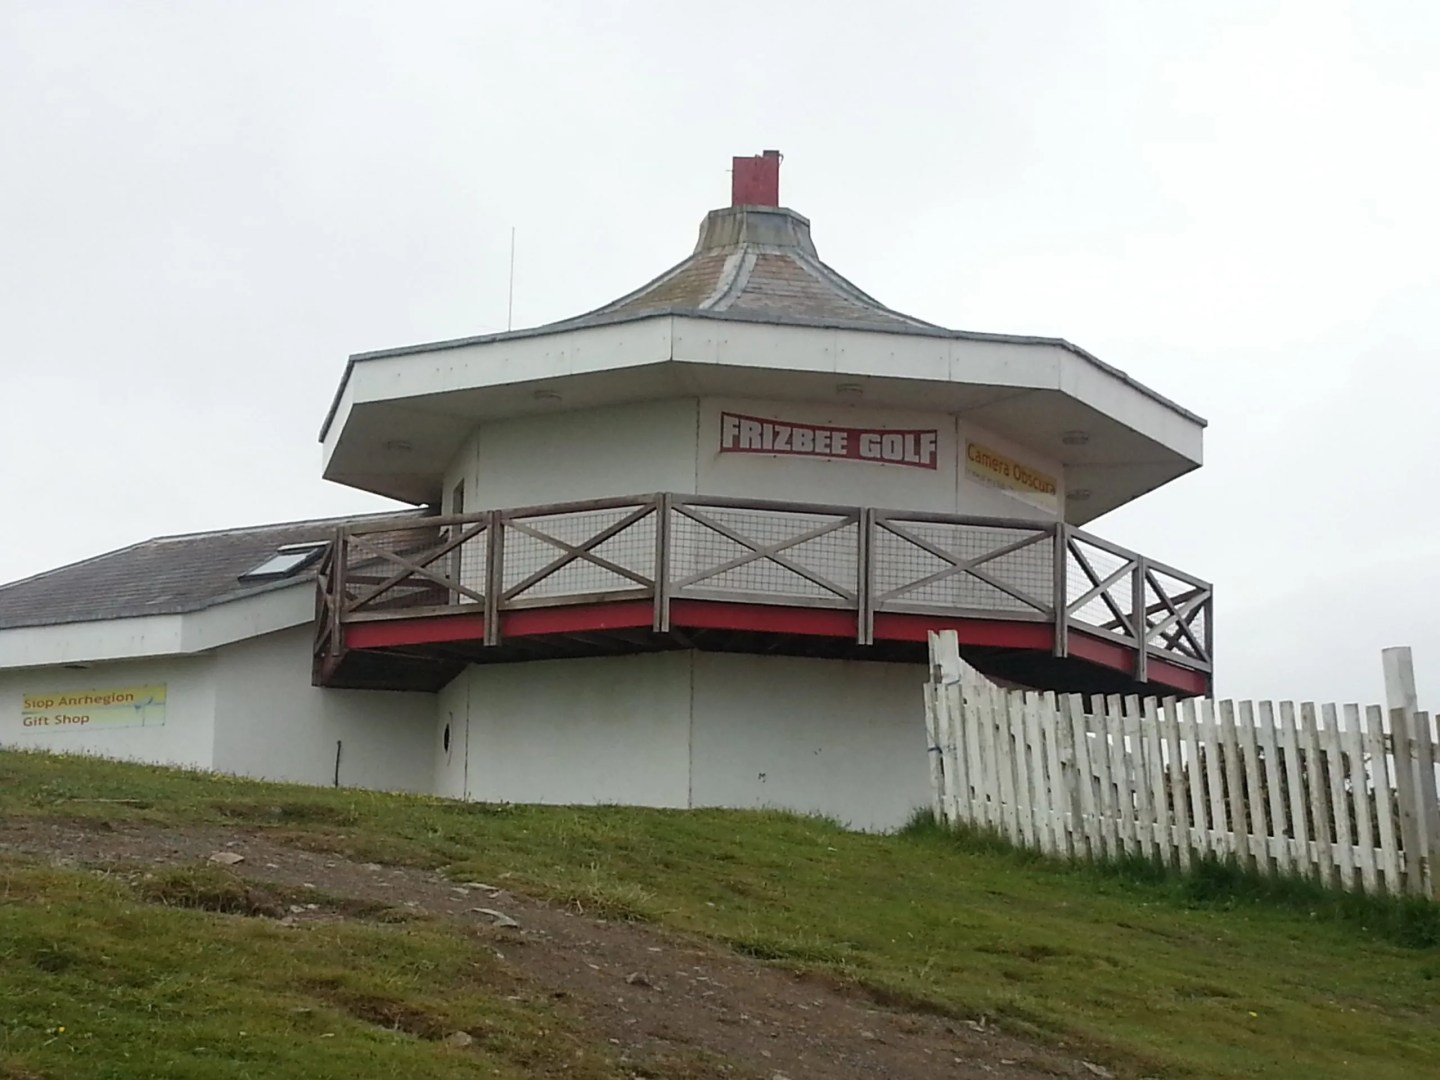 Camera Obscura Constitution Hill Aberystwyth